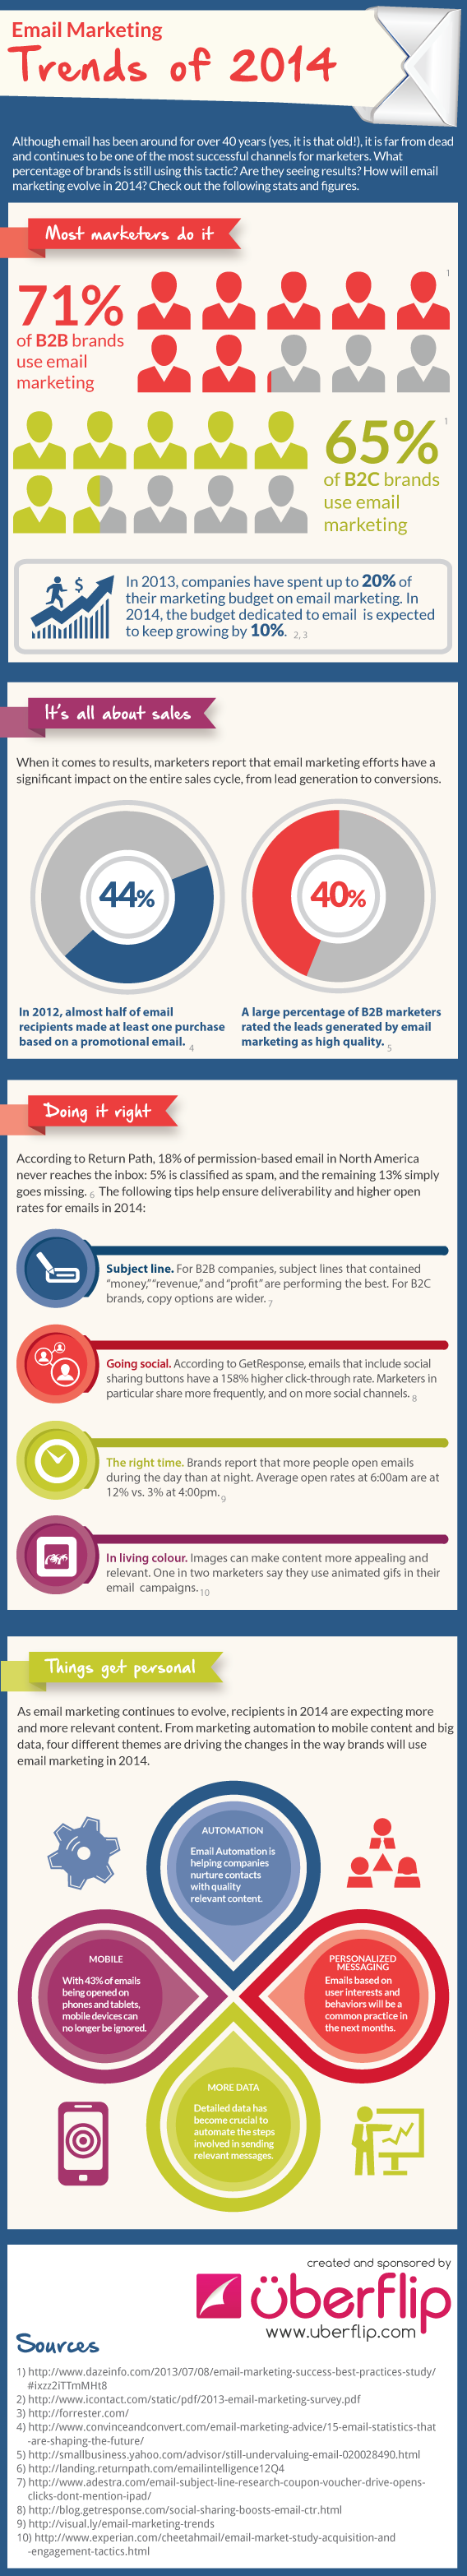 Email Marketing Trends 2014